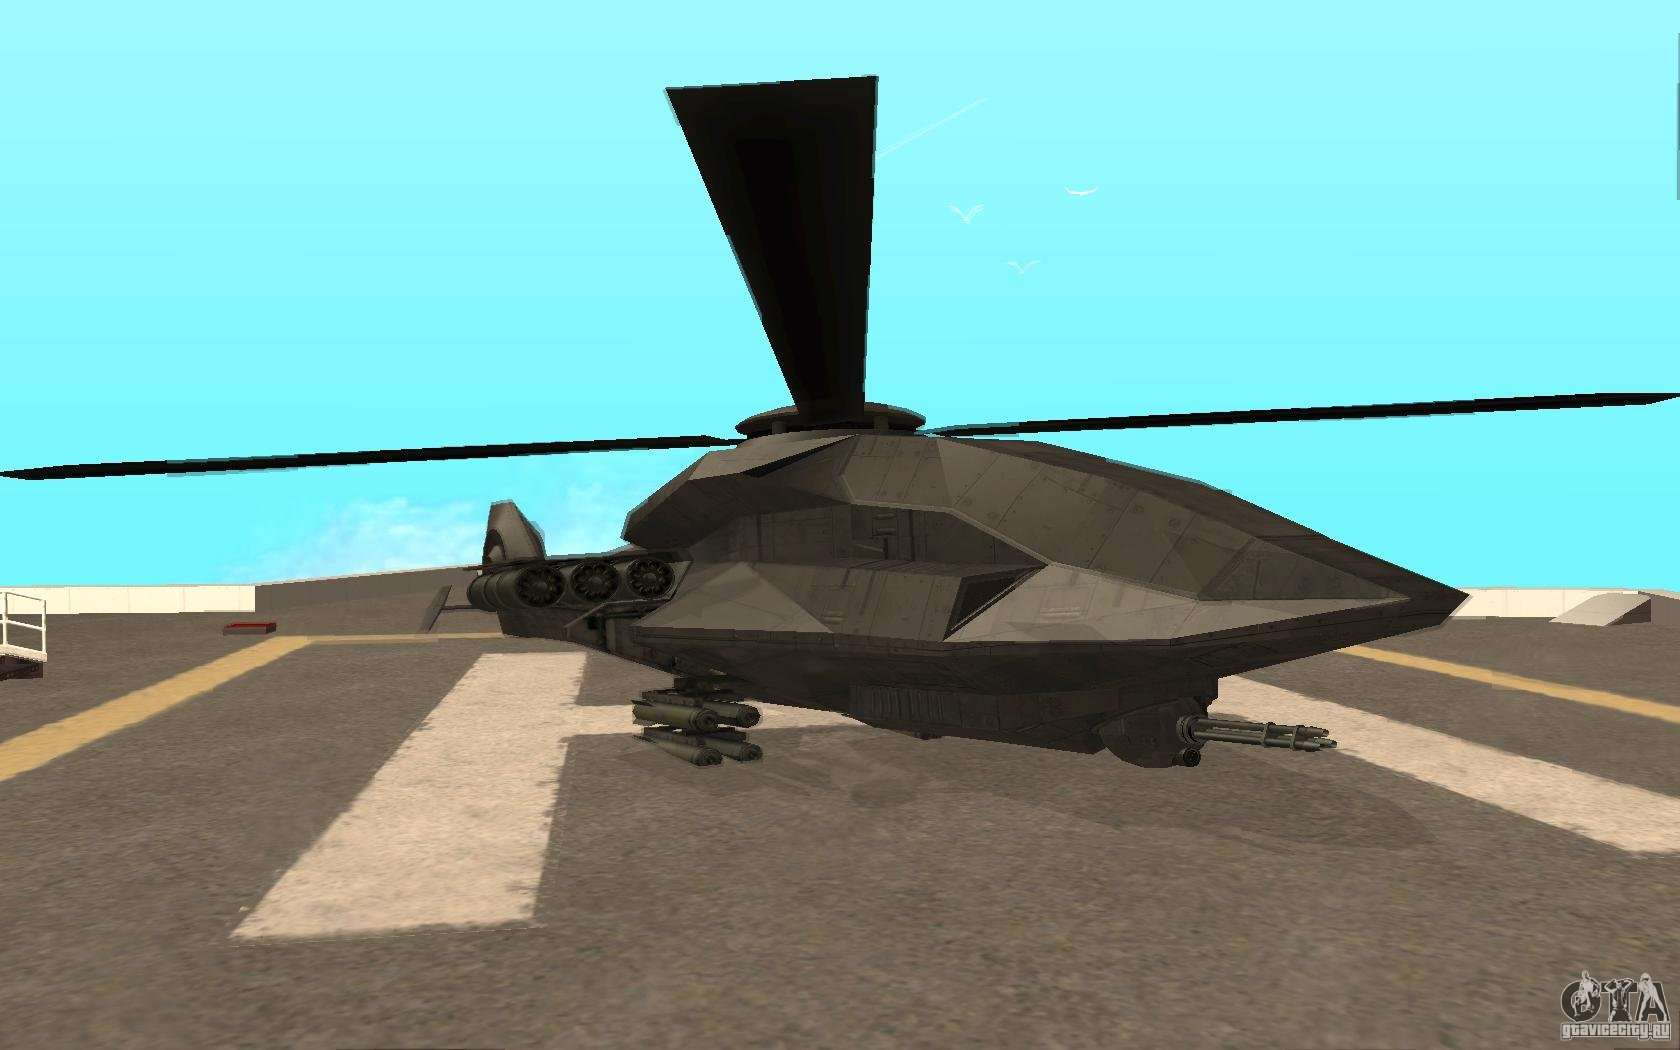 gta san andreas helicopter mods with 26106 Mq Drone From Bo2 on 2 moreover 124 volvobus additionally 3666 Ufo Atack in addition 25729 Rabota Pilotom likewise 97532 Boeing Mh 47g Chinook Replace.